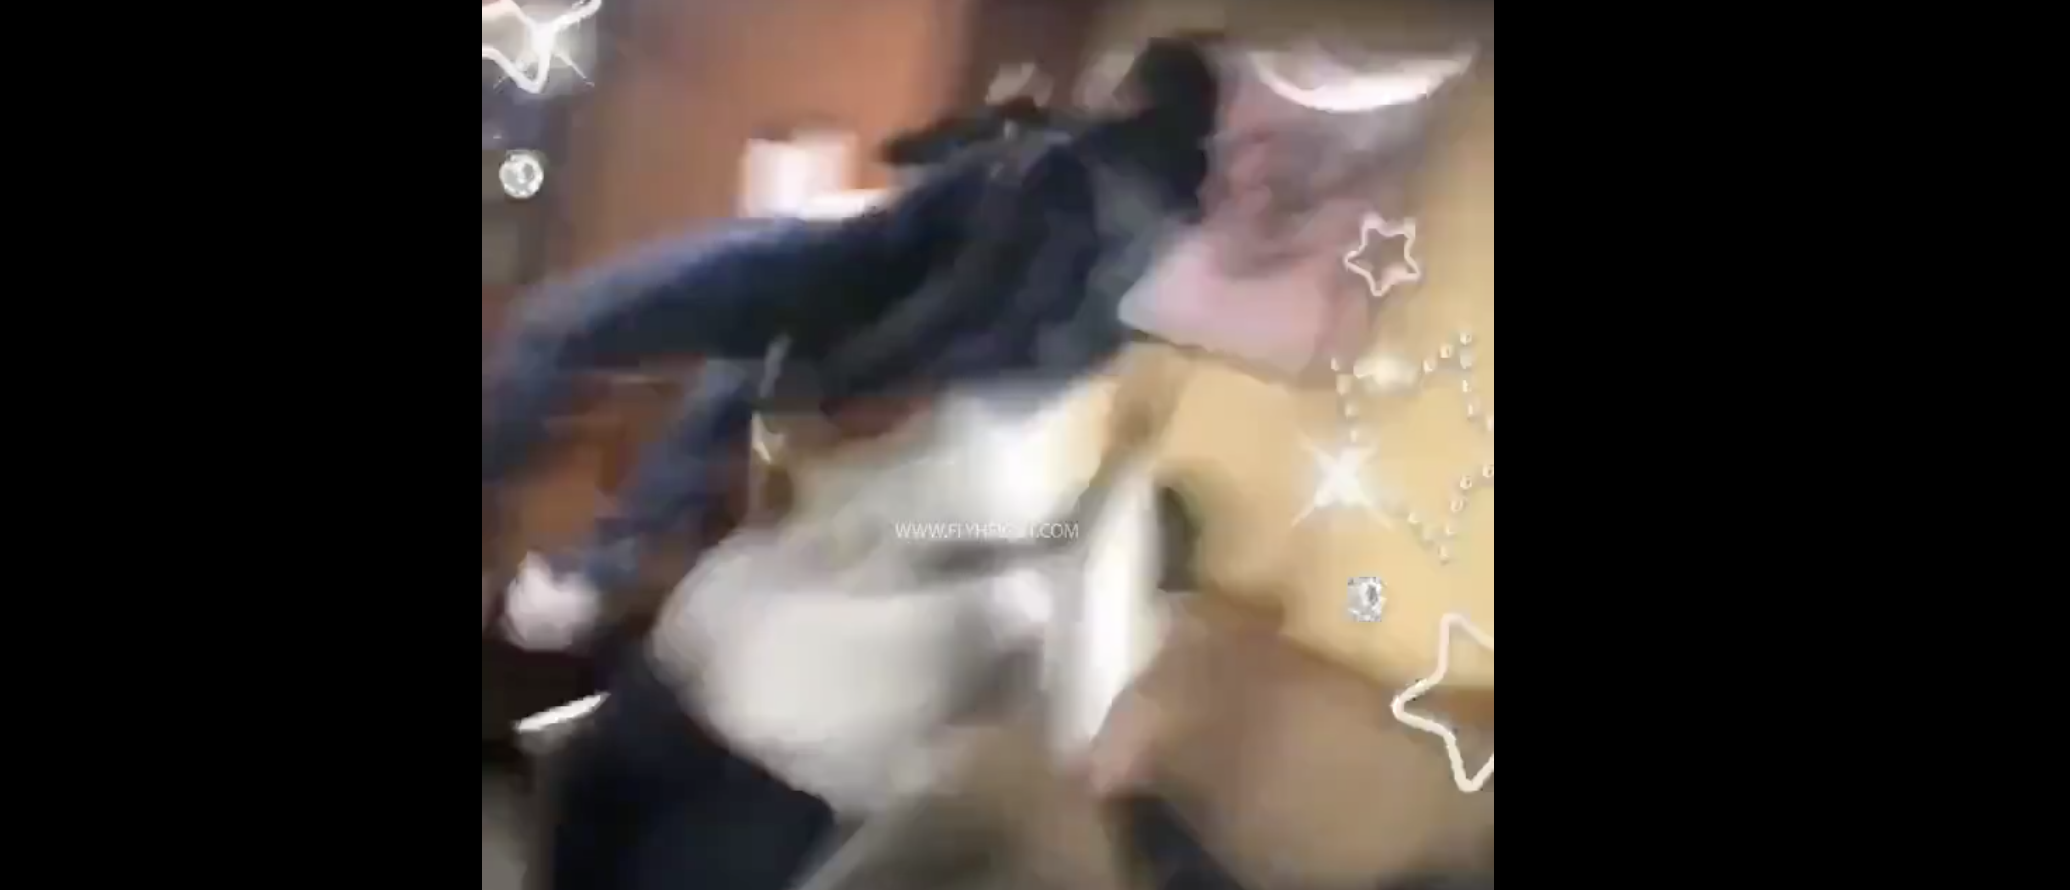 Security Guard Body Slams Unruly Man The Daily Caller